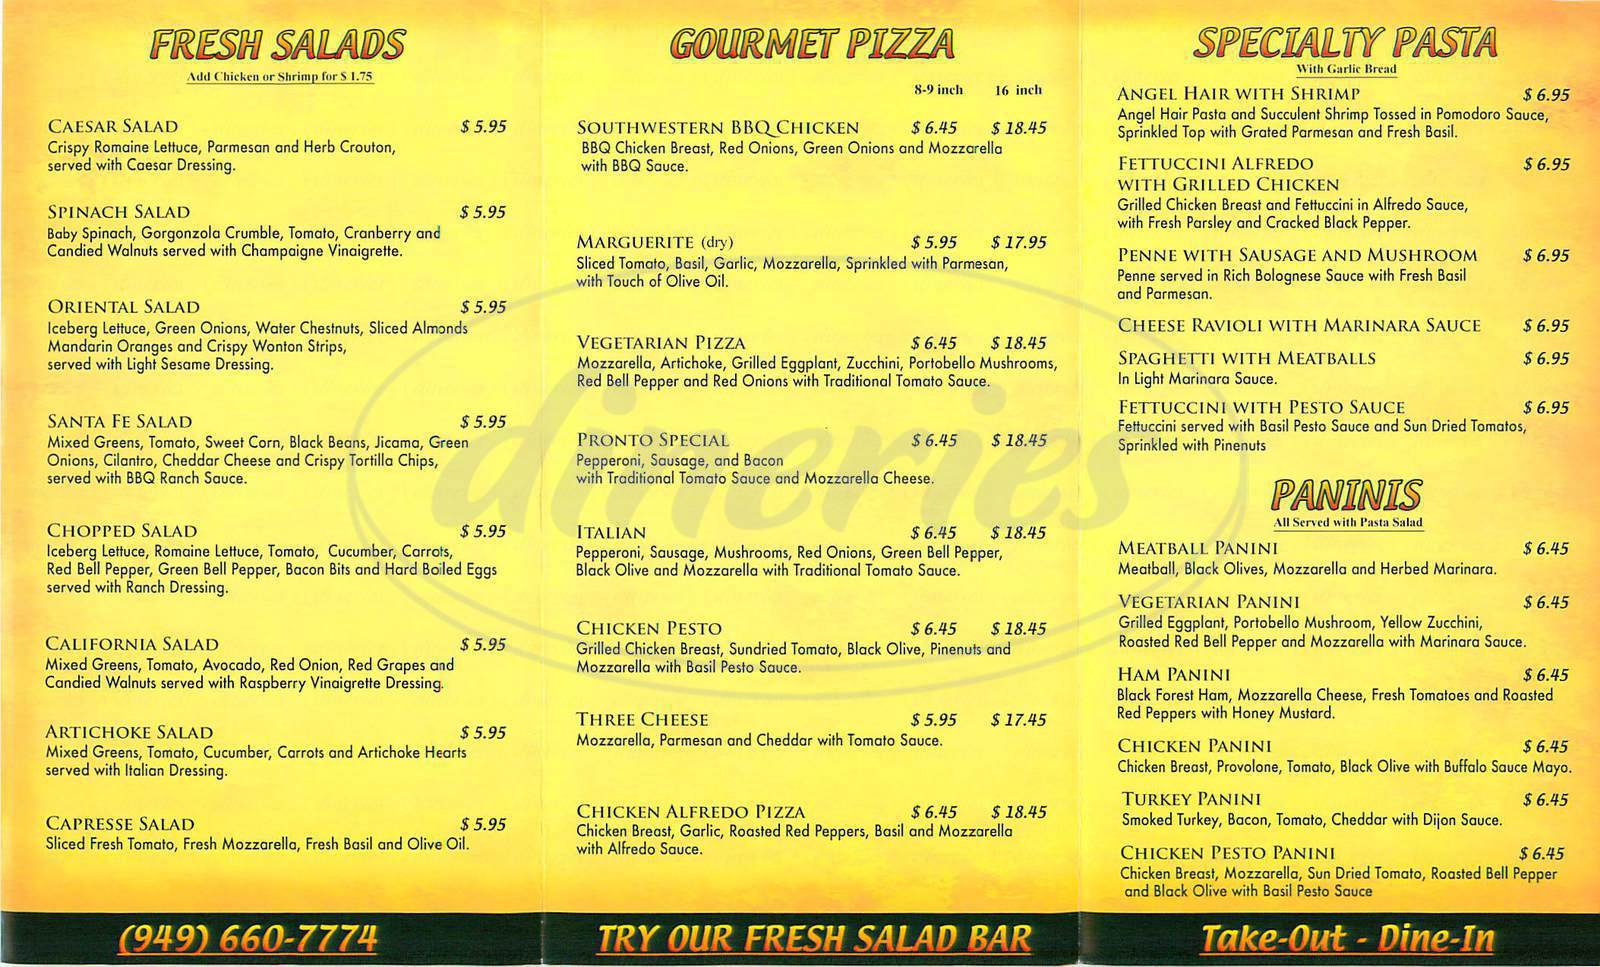 menu for Pronto Pizza & Pasta